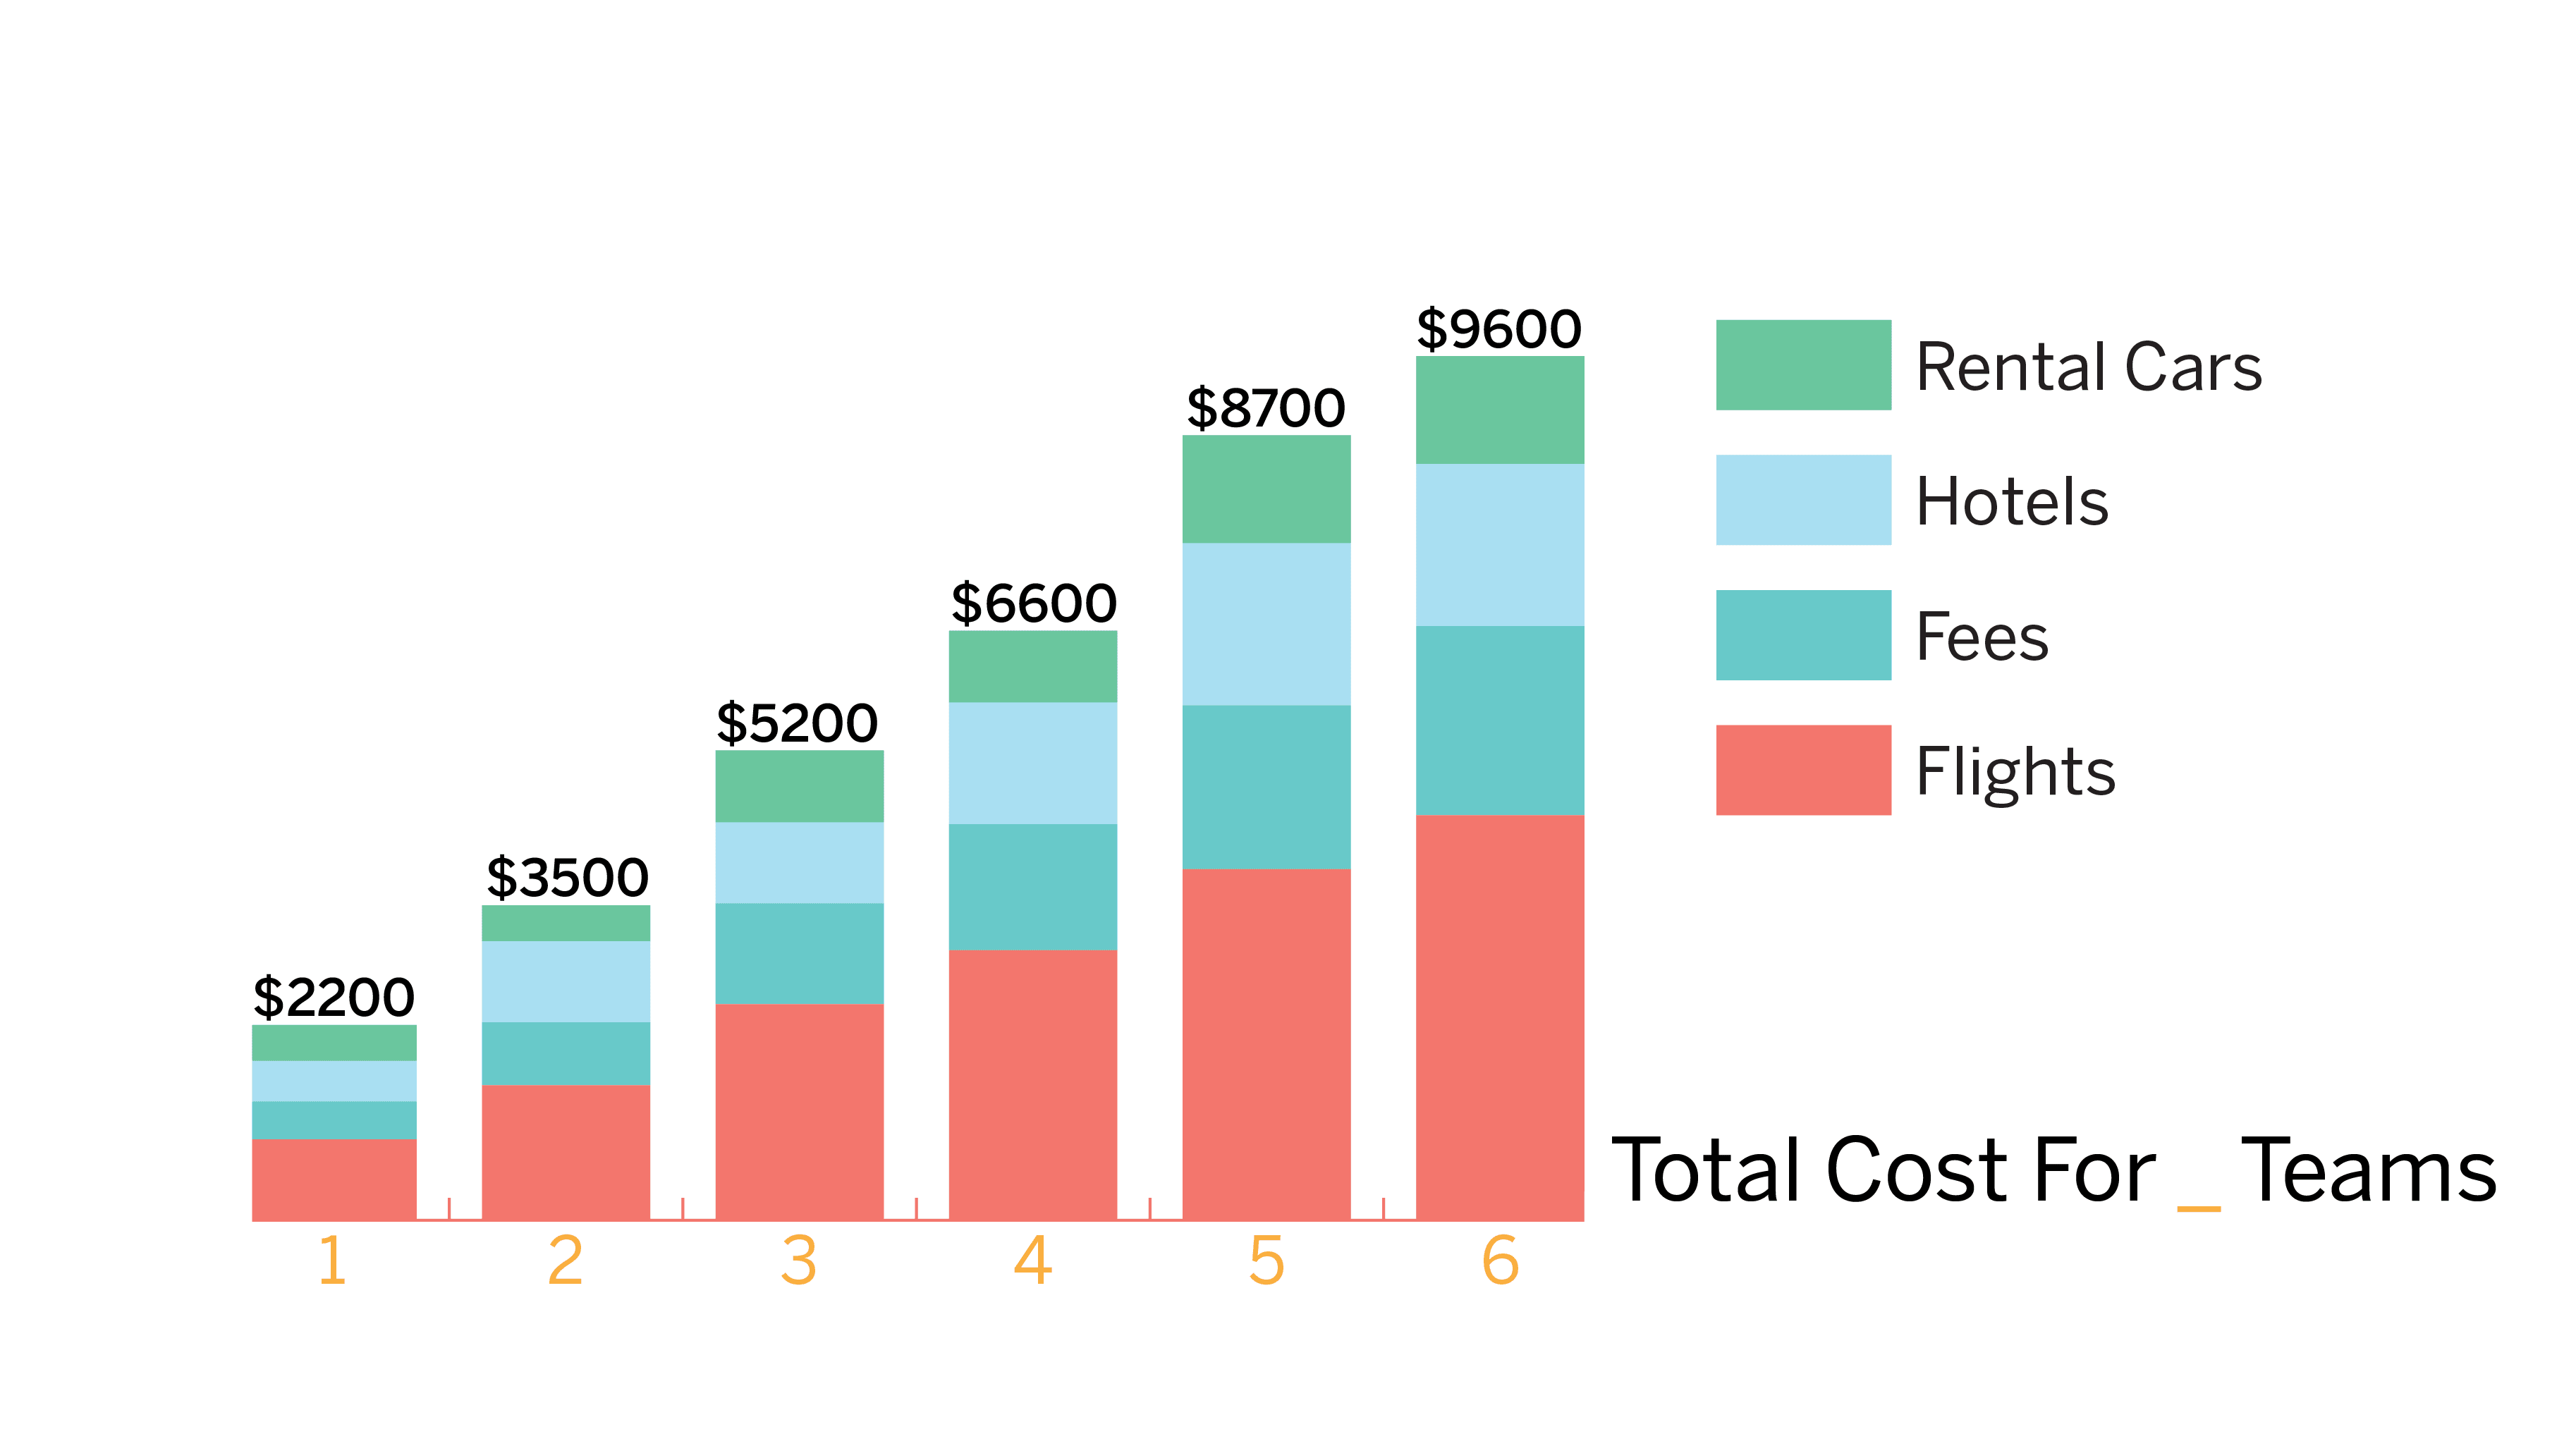 Graphic showing the additional cost for each team sent to the tournament. The cost for 1 team is $2,200; for 2 teams, $3,500; for 3 teams, $5,200; for 4 teams, $6,600; for 5 teams, $8,700; and for 6 teams, $9,600.